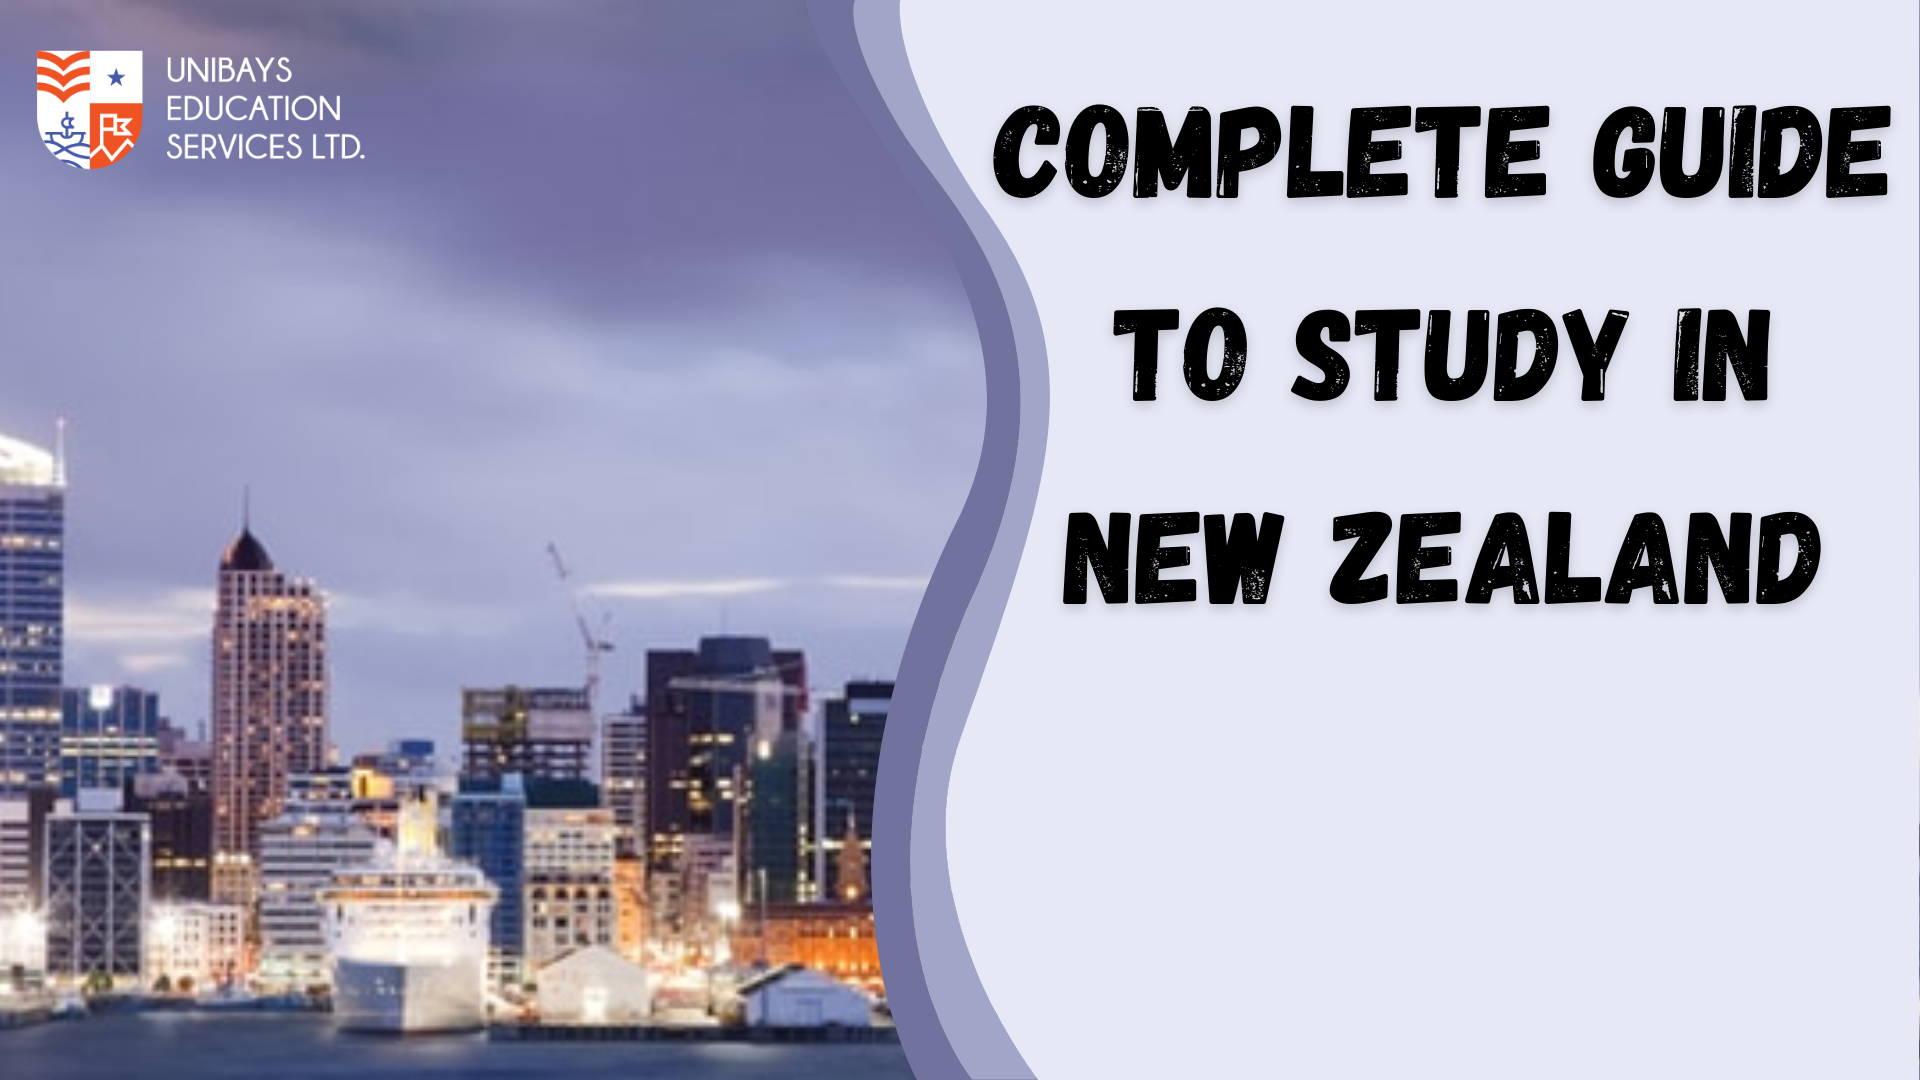 Study in New Zealand - The Complete Guide